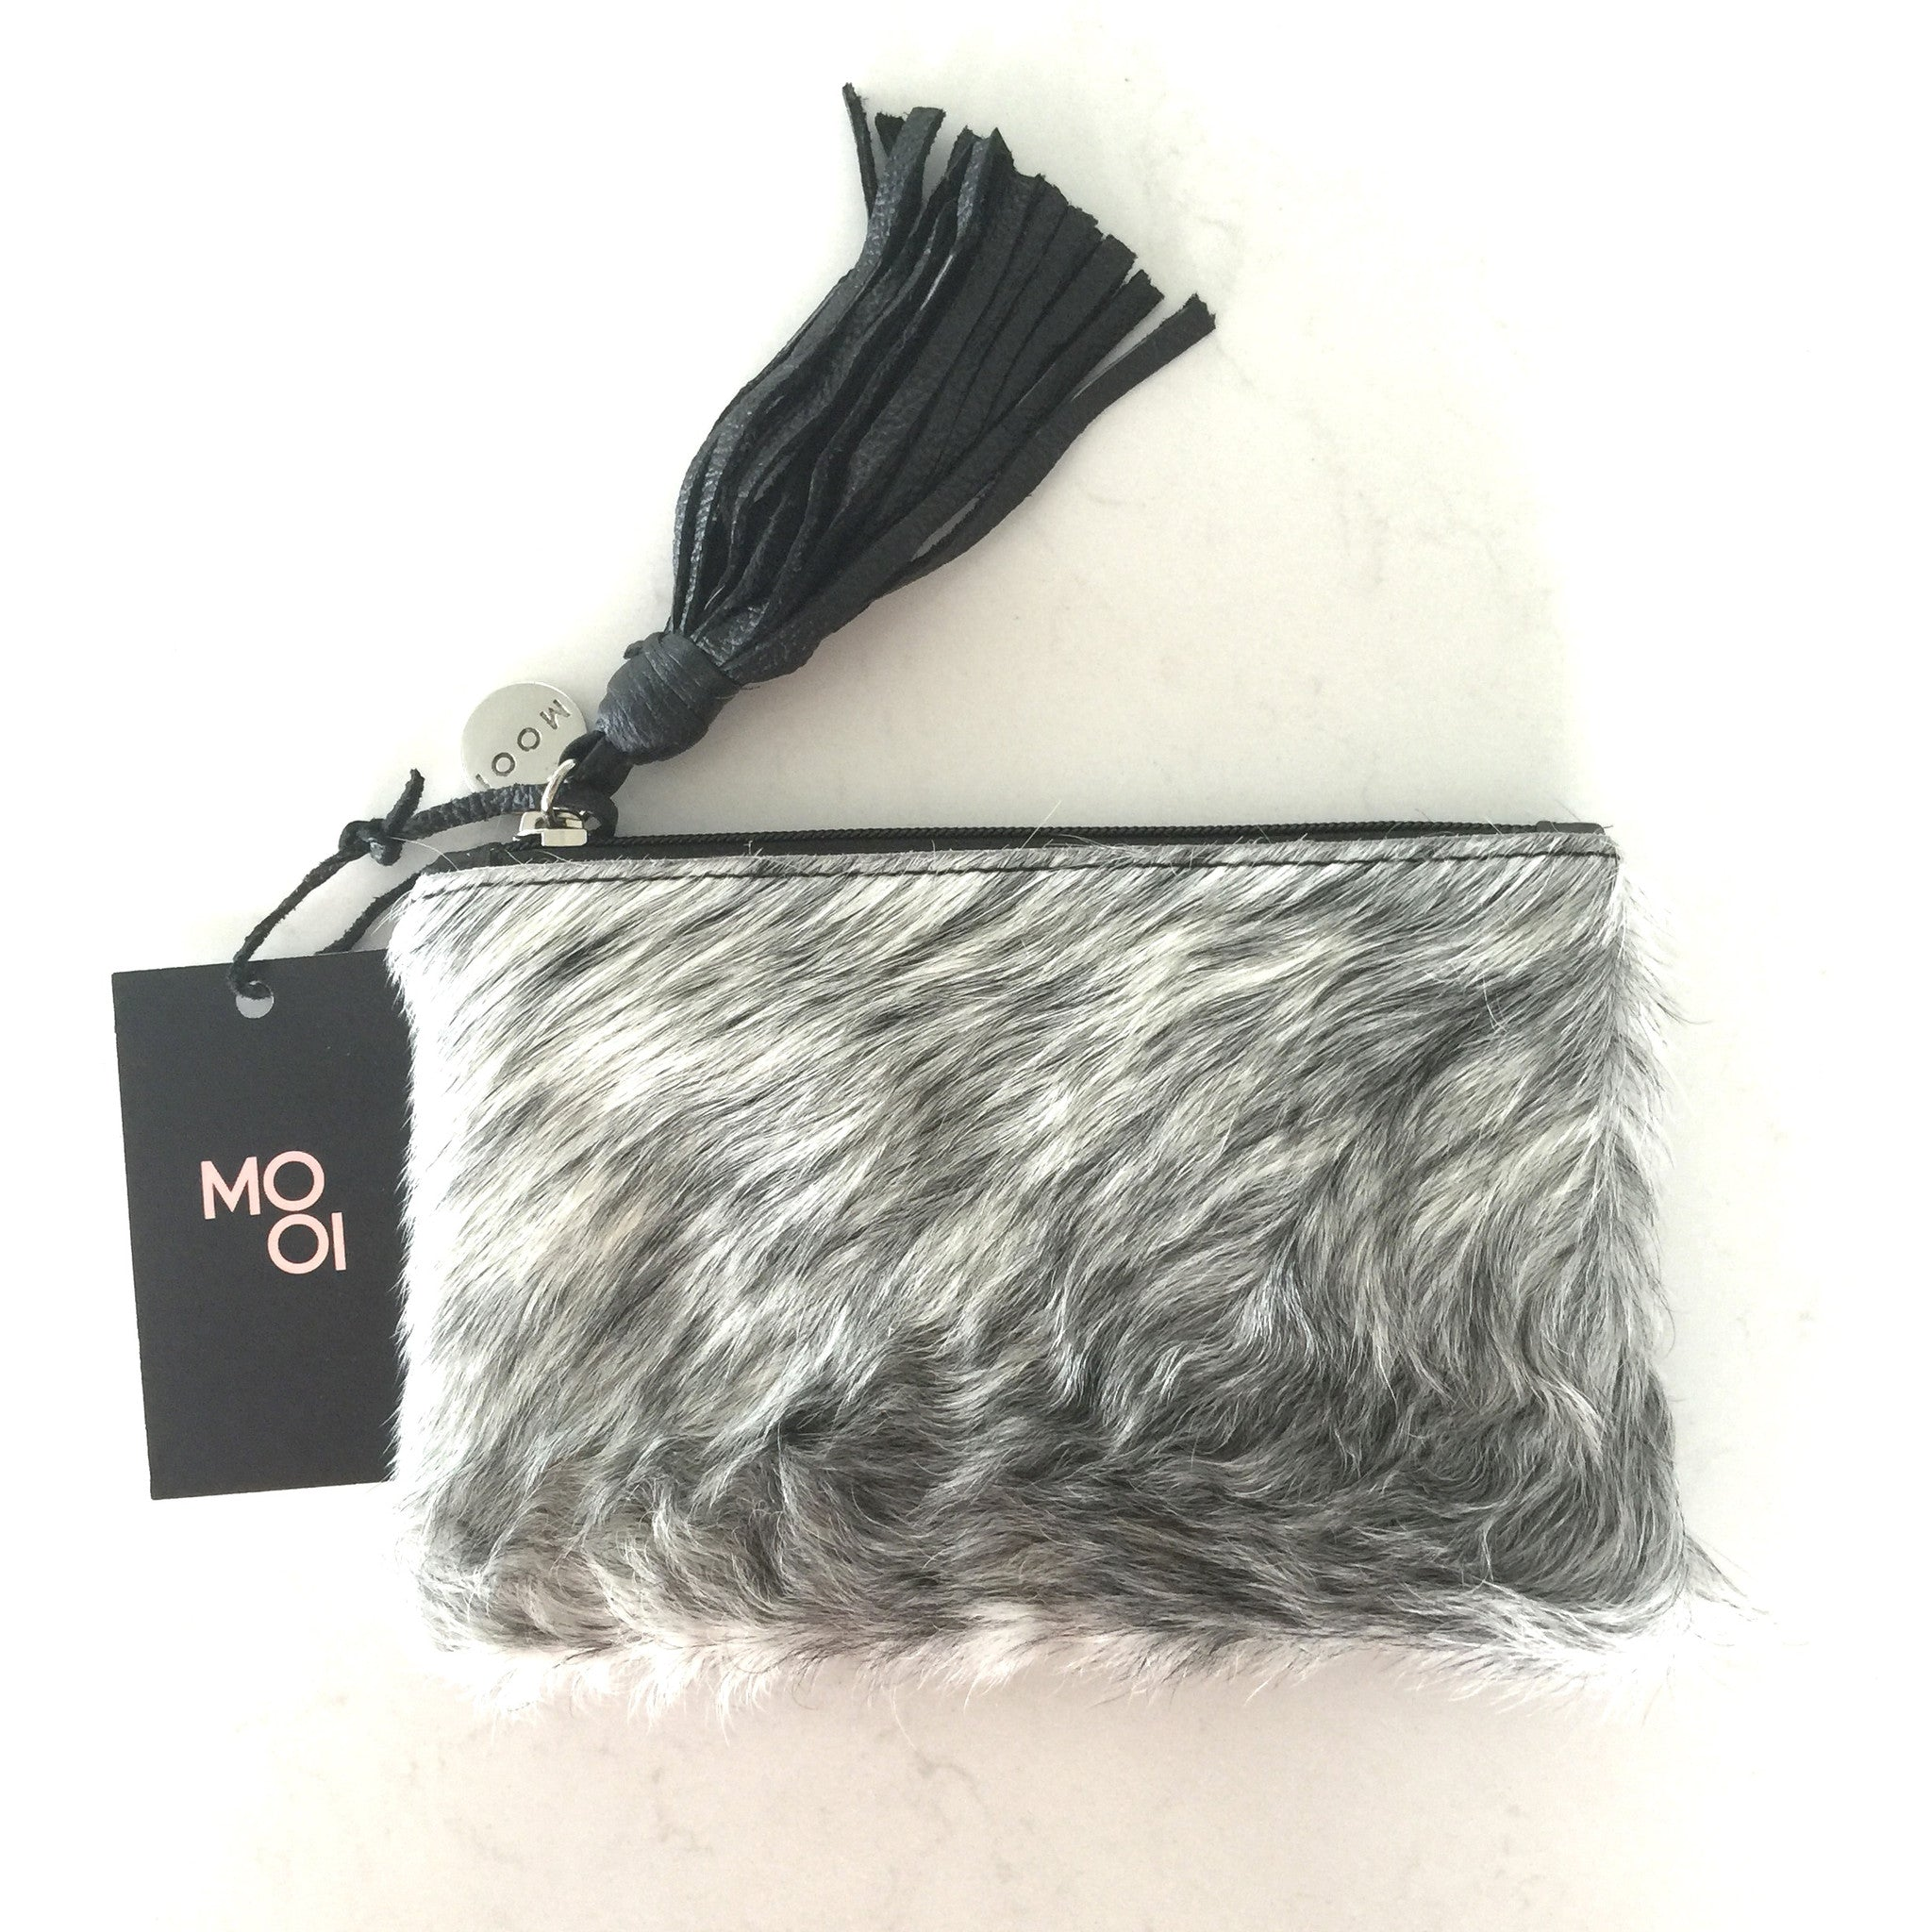 Chloe Black and White Purse in Salt and Pepper by Mooi